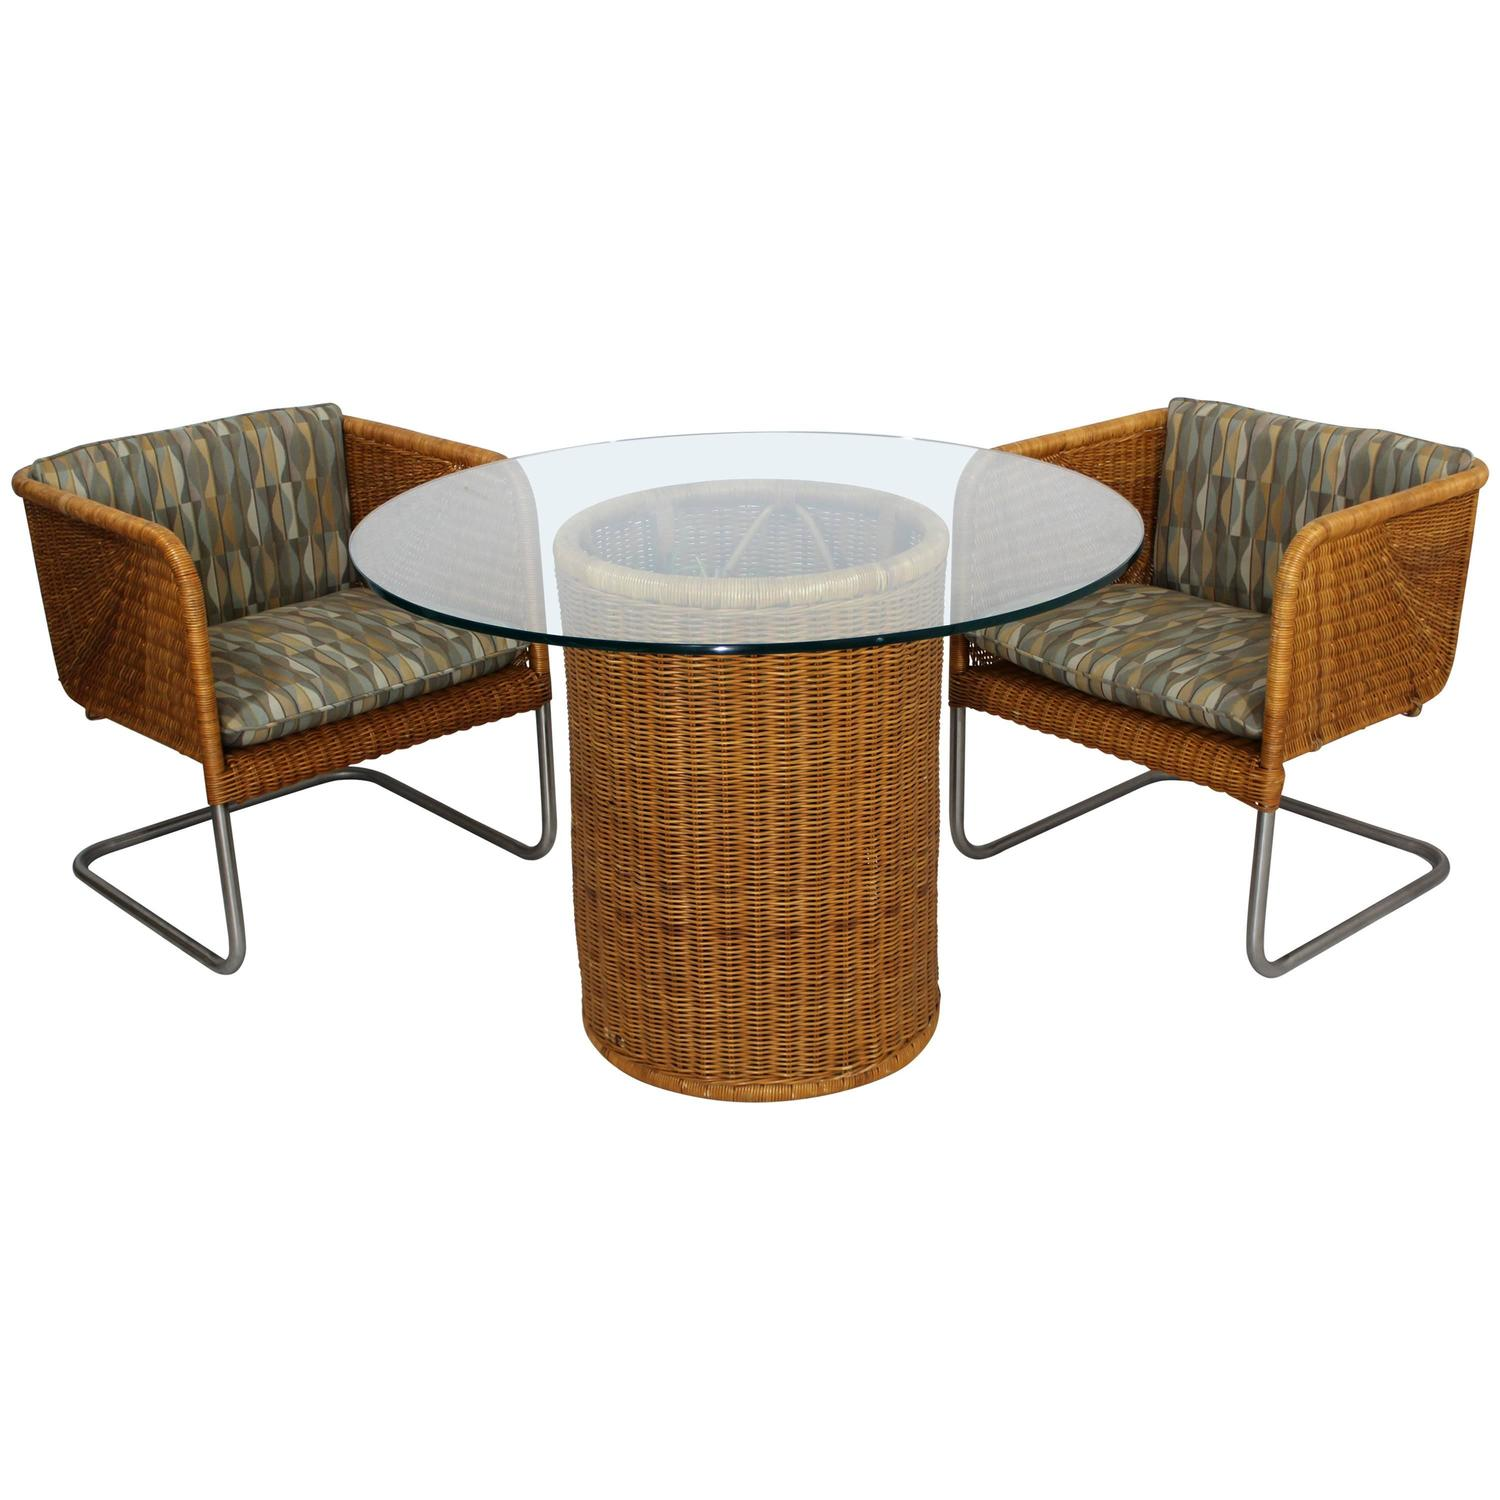 Italian Wicker Patio Furniture Set Table and Two Chairs circa